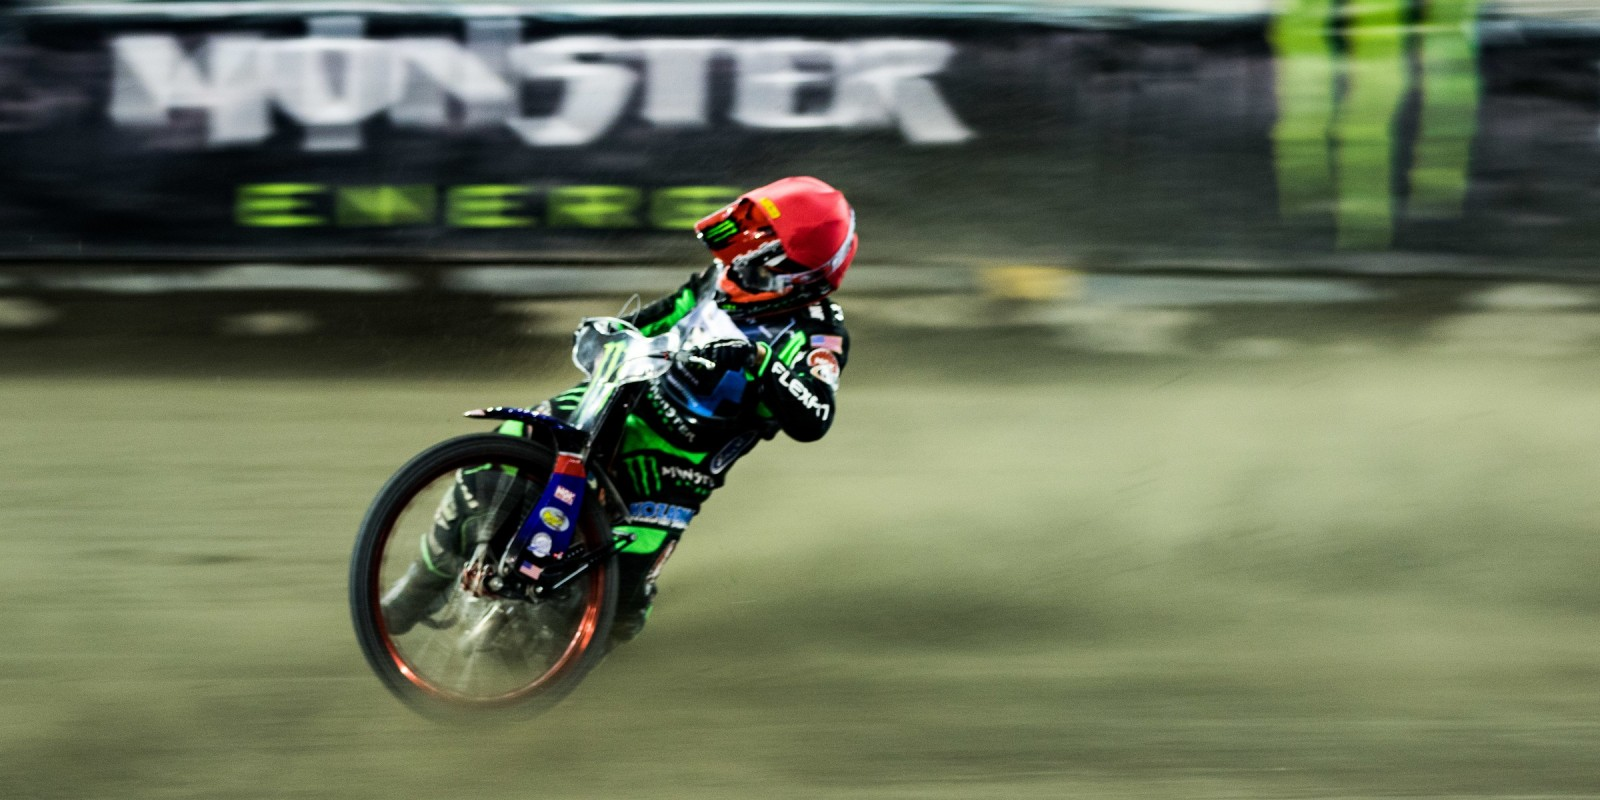 Pictures from round 1 of 2017 Speedway Best Pairs series in Torun, Poland - Greg Hancock action picture